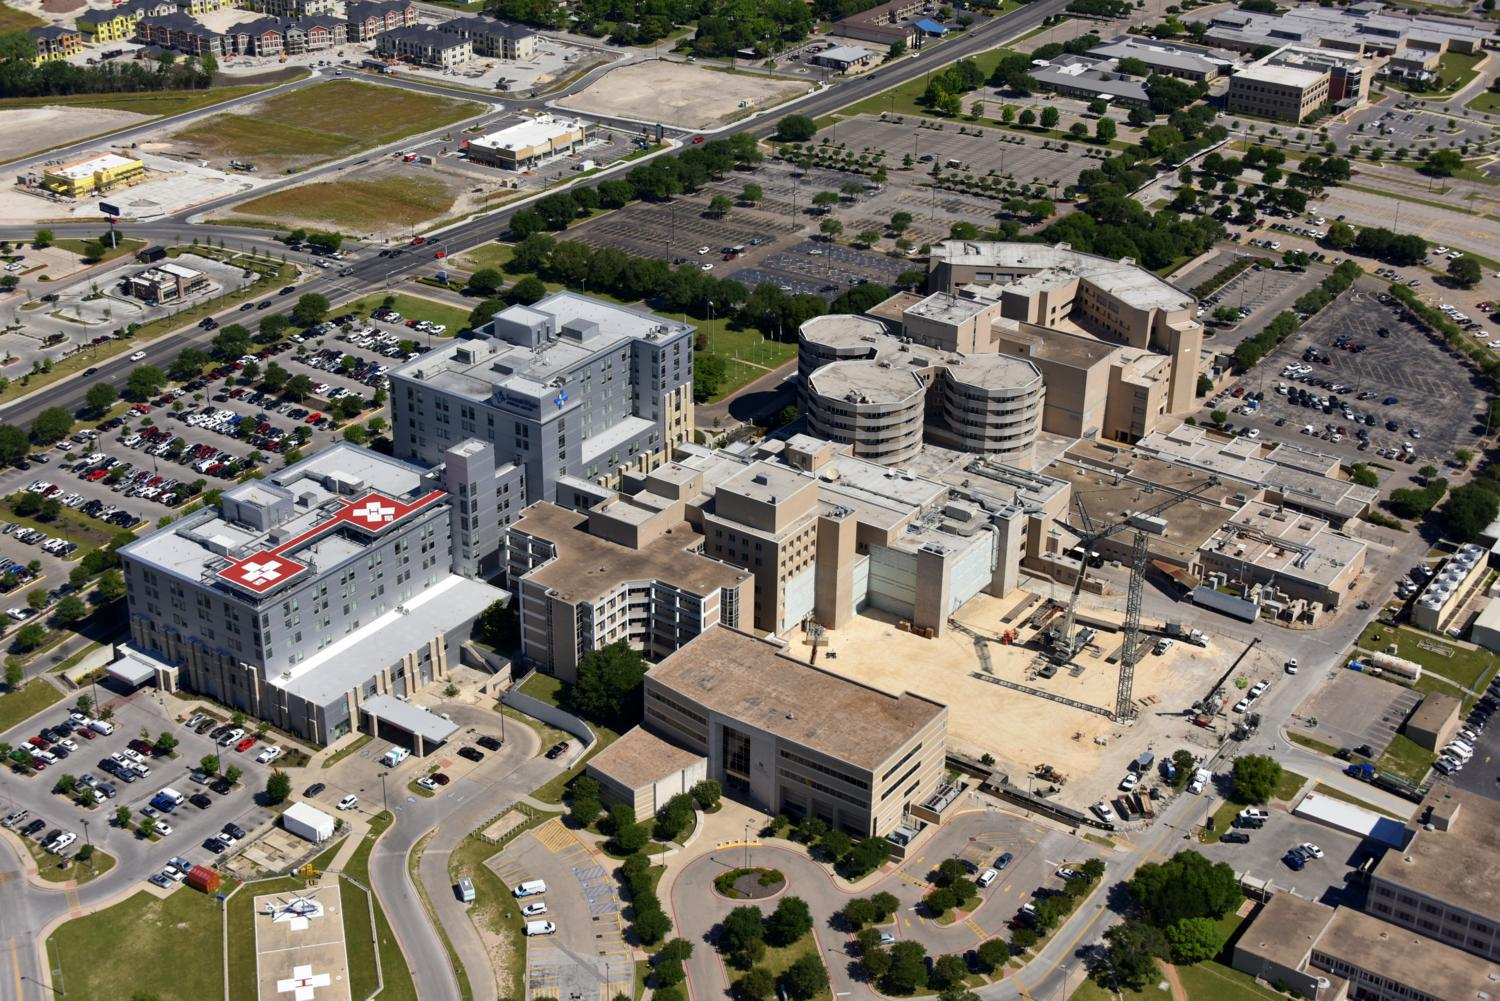 Scott & White Hospital, Temple, Texas - Temple Aerial Photographer - Aerial Drone Image - Aerial Drone Video - Temple, TX - Central Texas